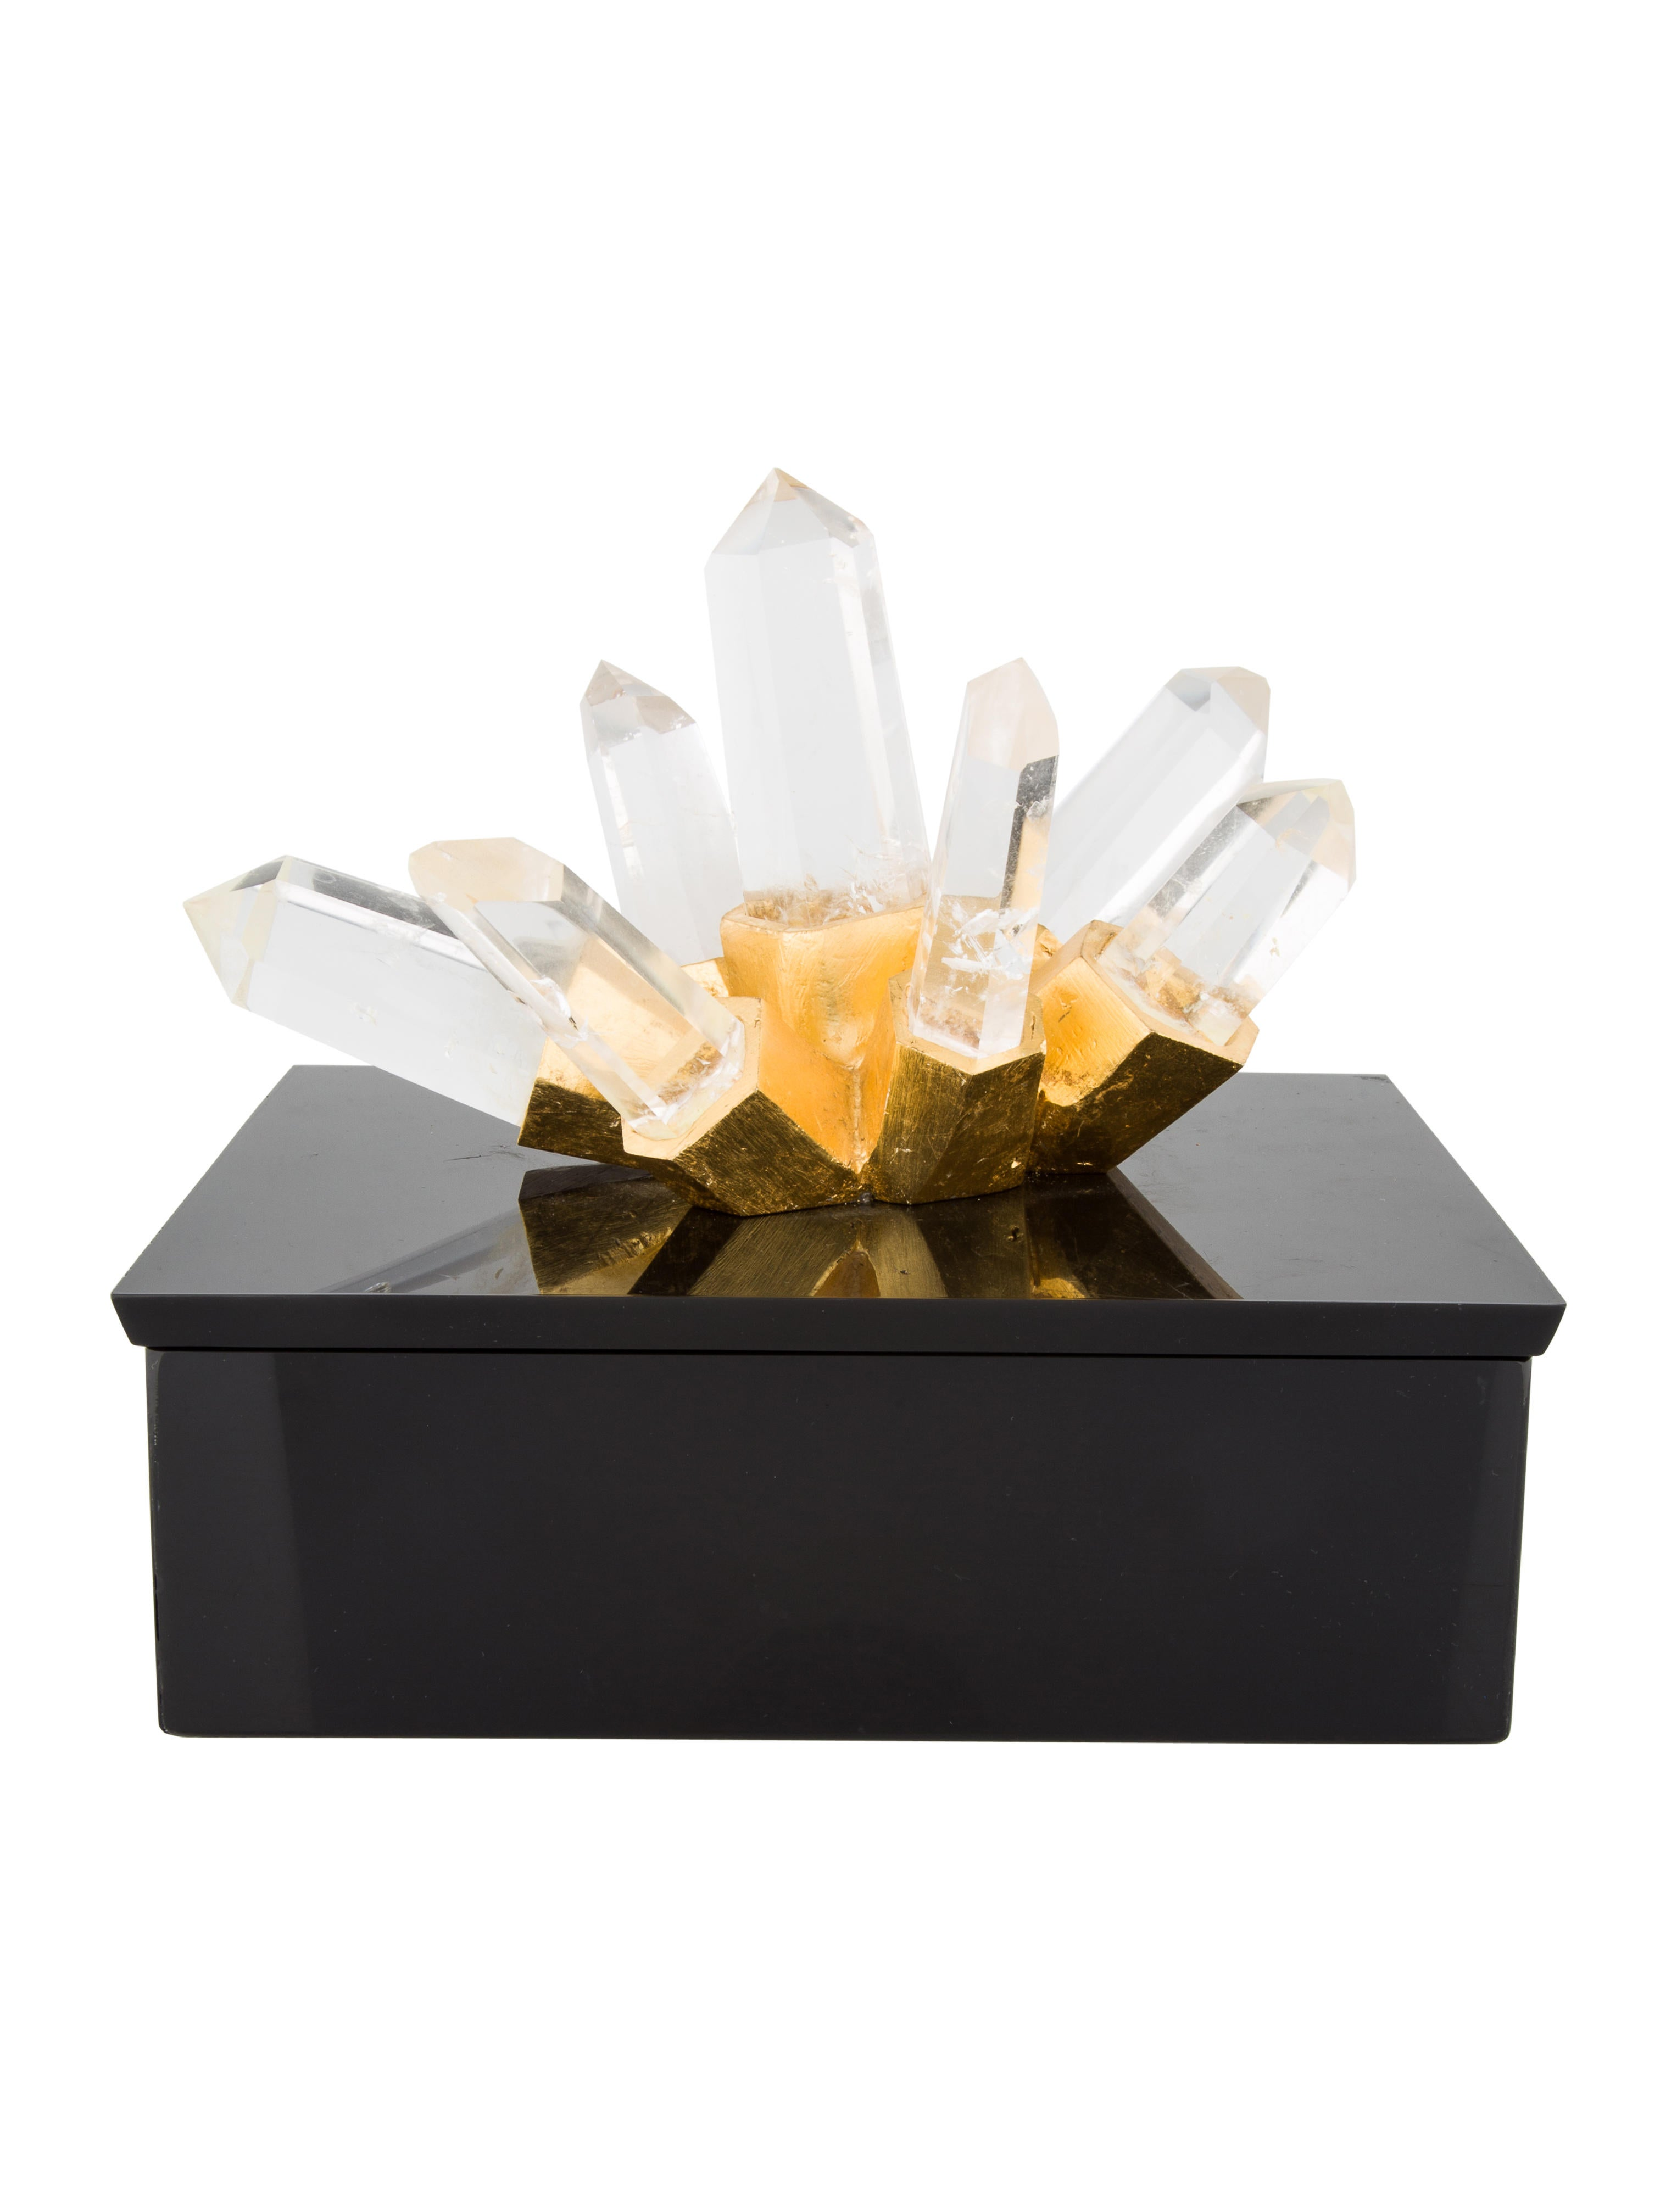 Quartz box decor and accessories box20061 the realreal for Home decor accessories